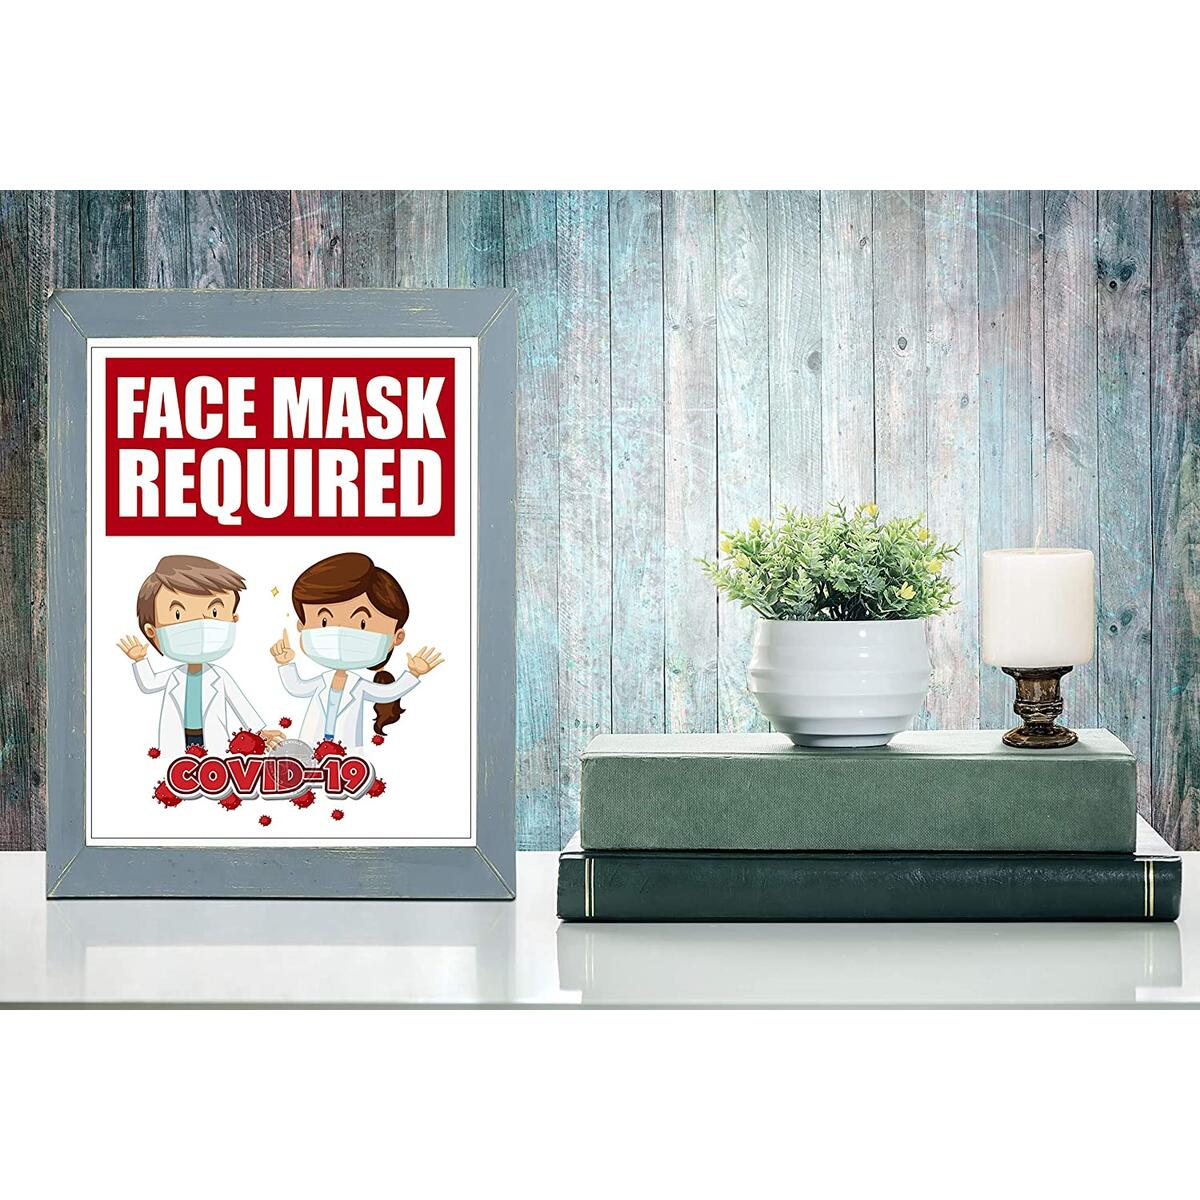 Face Mask Required Sign - Coronavirus Covid19 Poster - 5pack